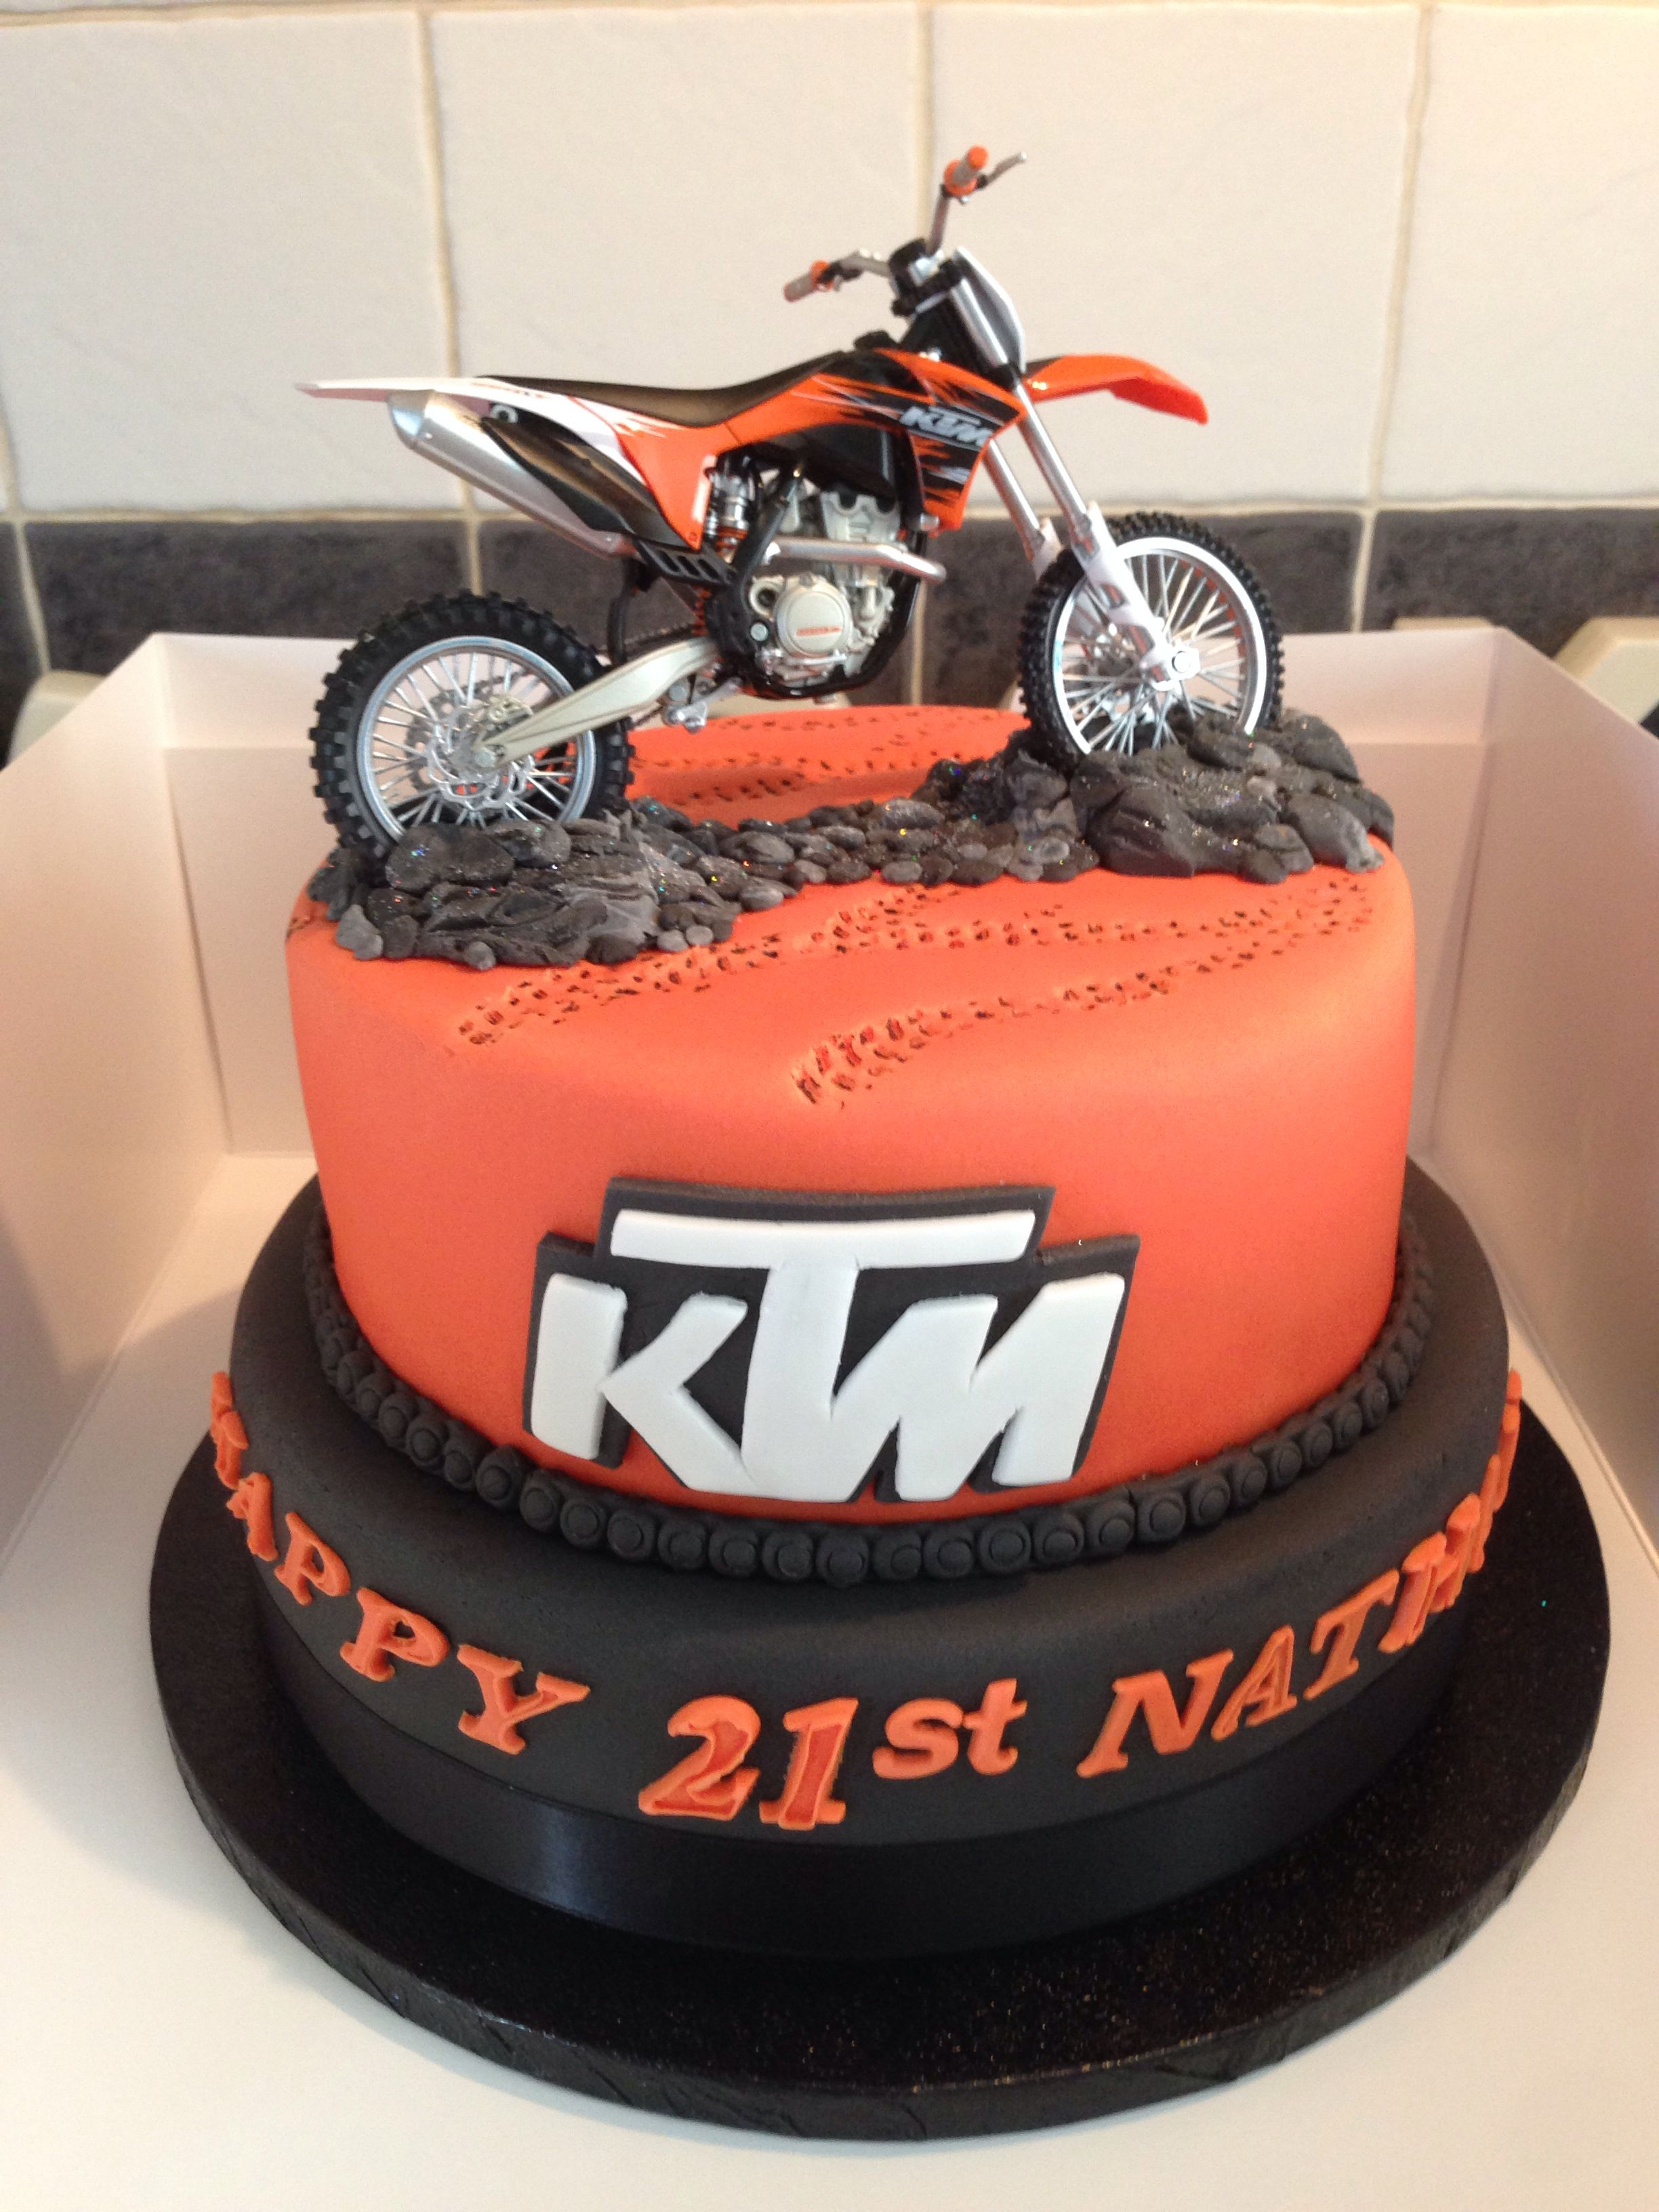 Swell Really Awesome Birthday Cake With A Ktm Dirt Bike On It Torte Funny Birthday Cards Online Overcheapnameinfo